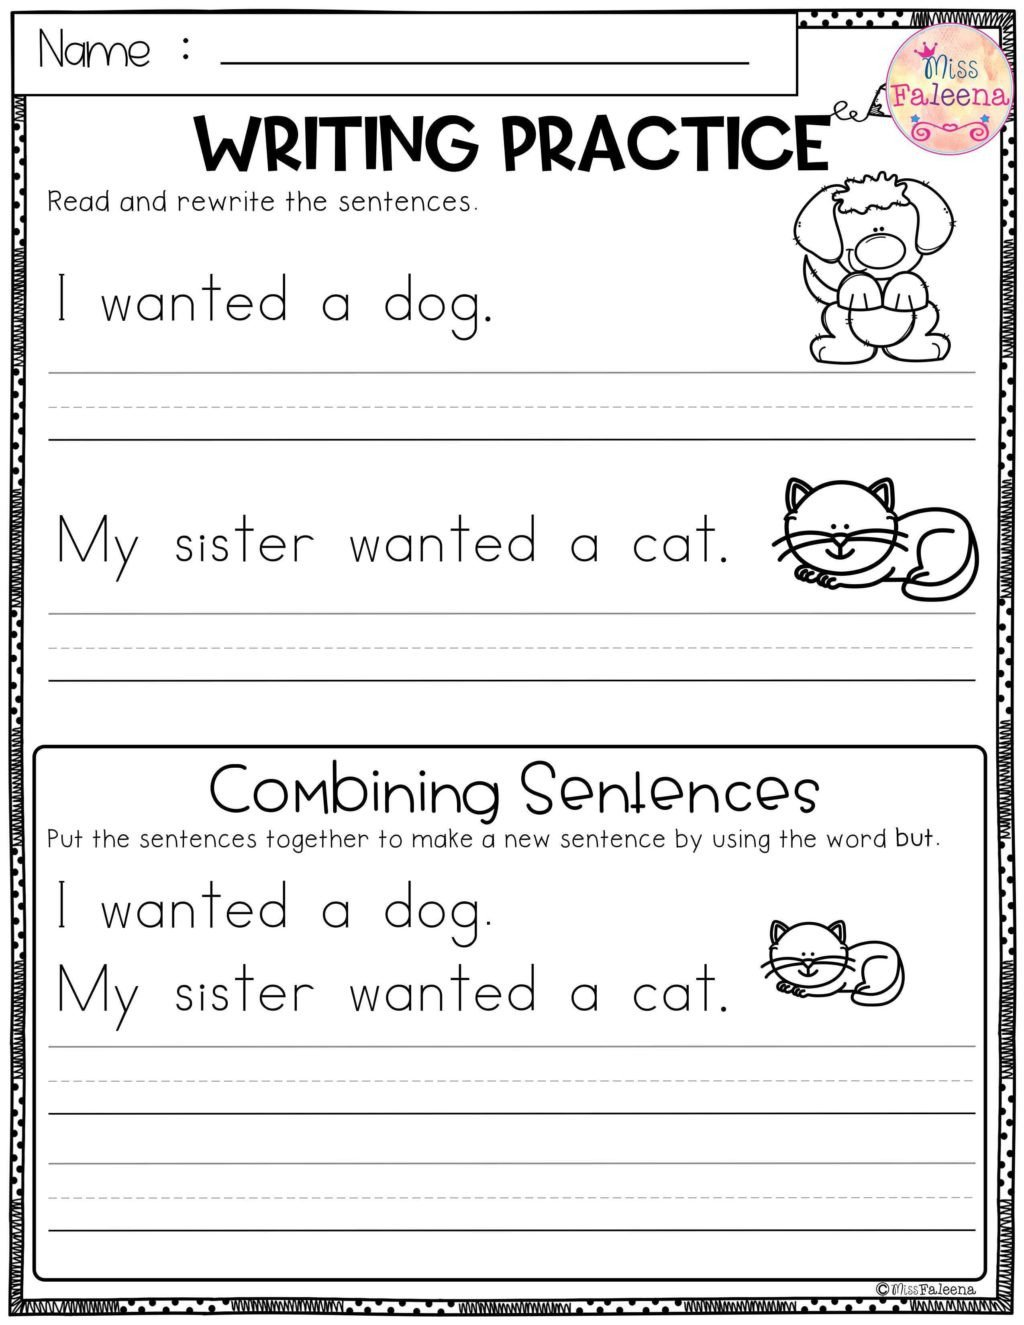 free writing practice bining sentences outstanding grade worksheets worksheet to print outble 1024x1325